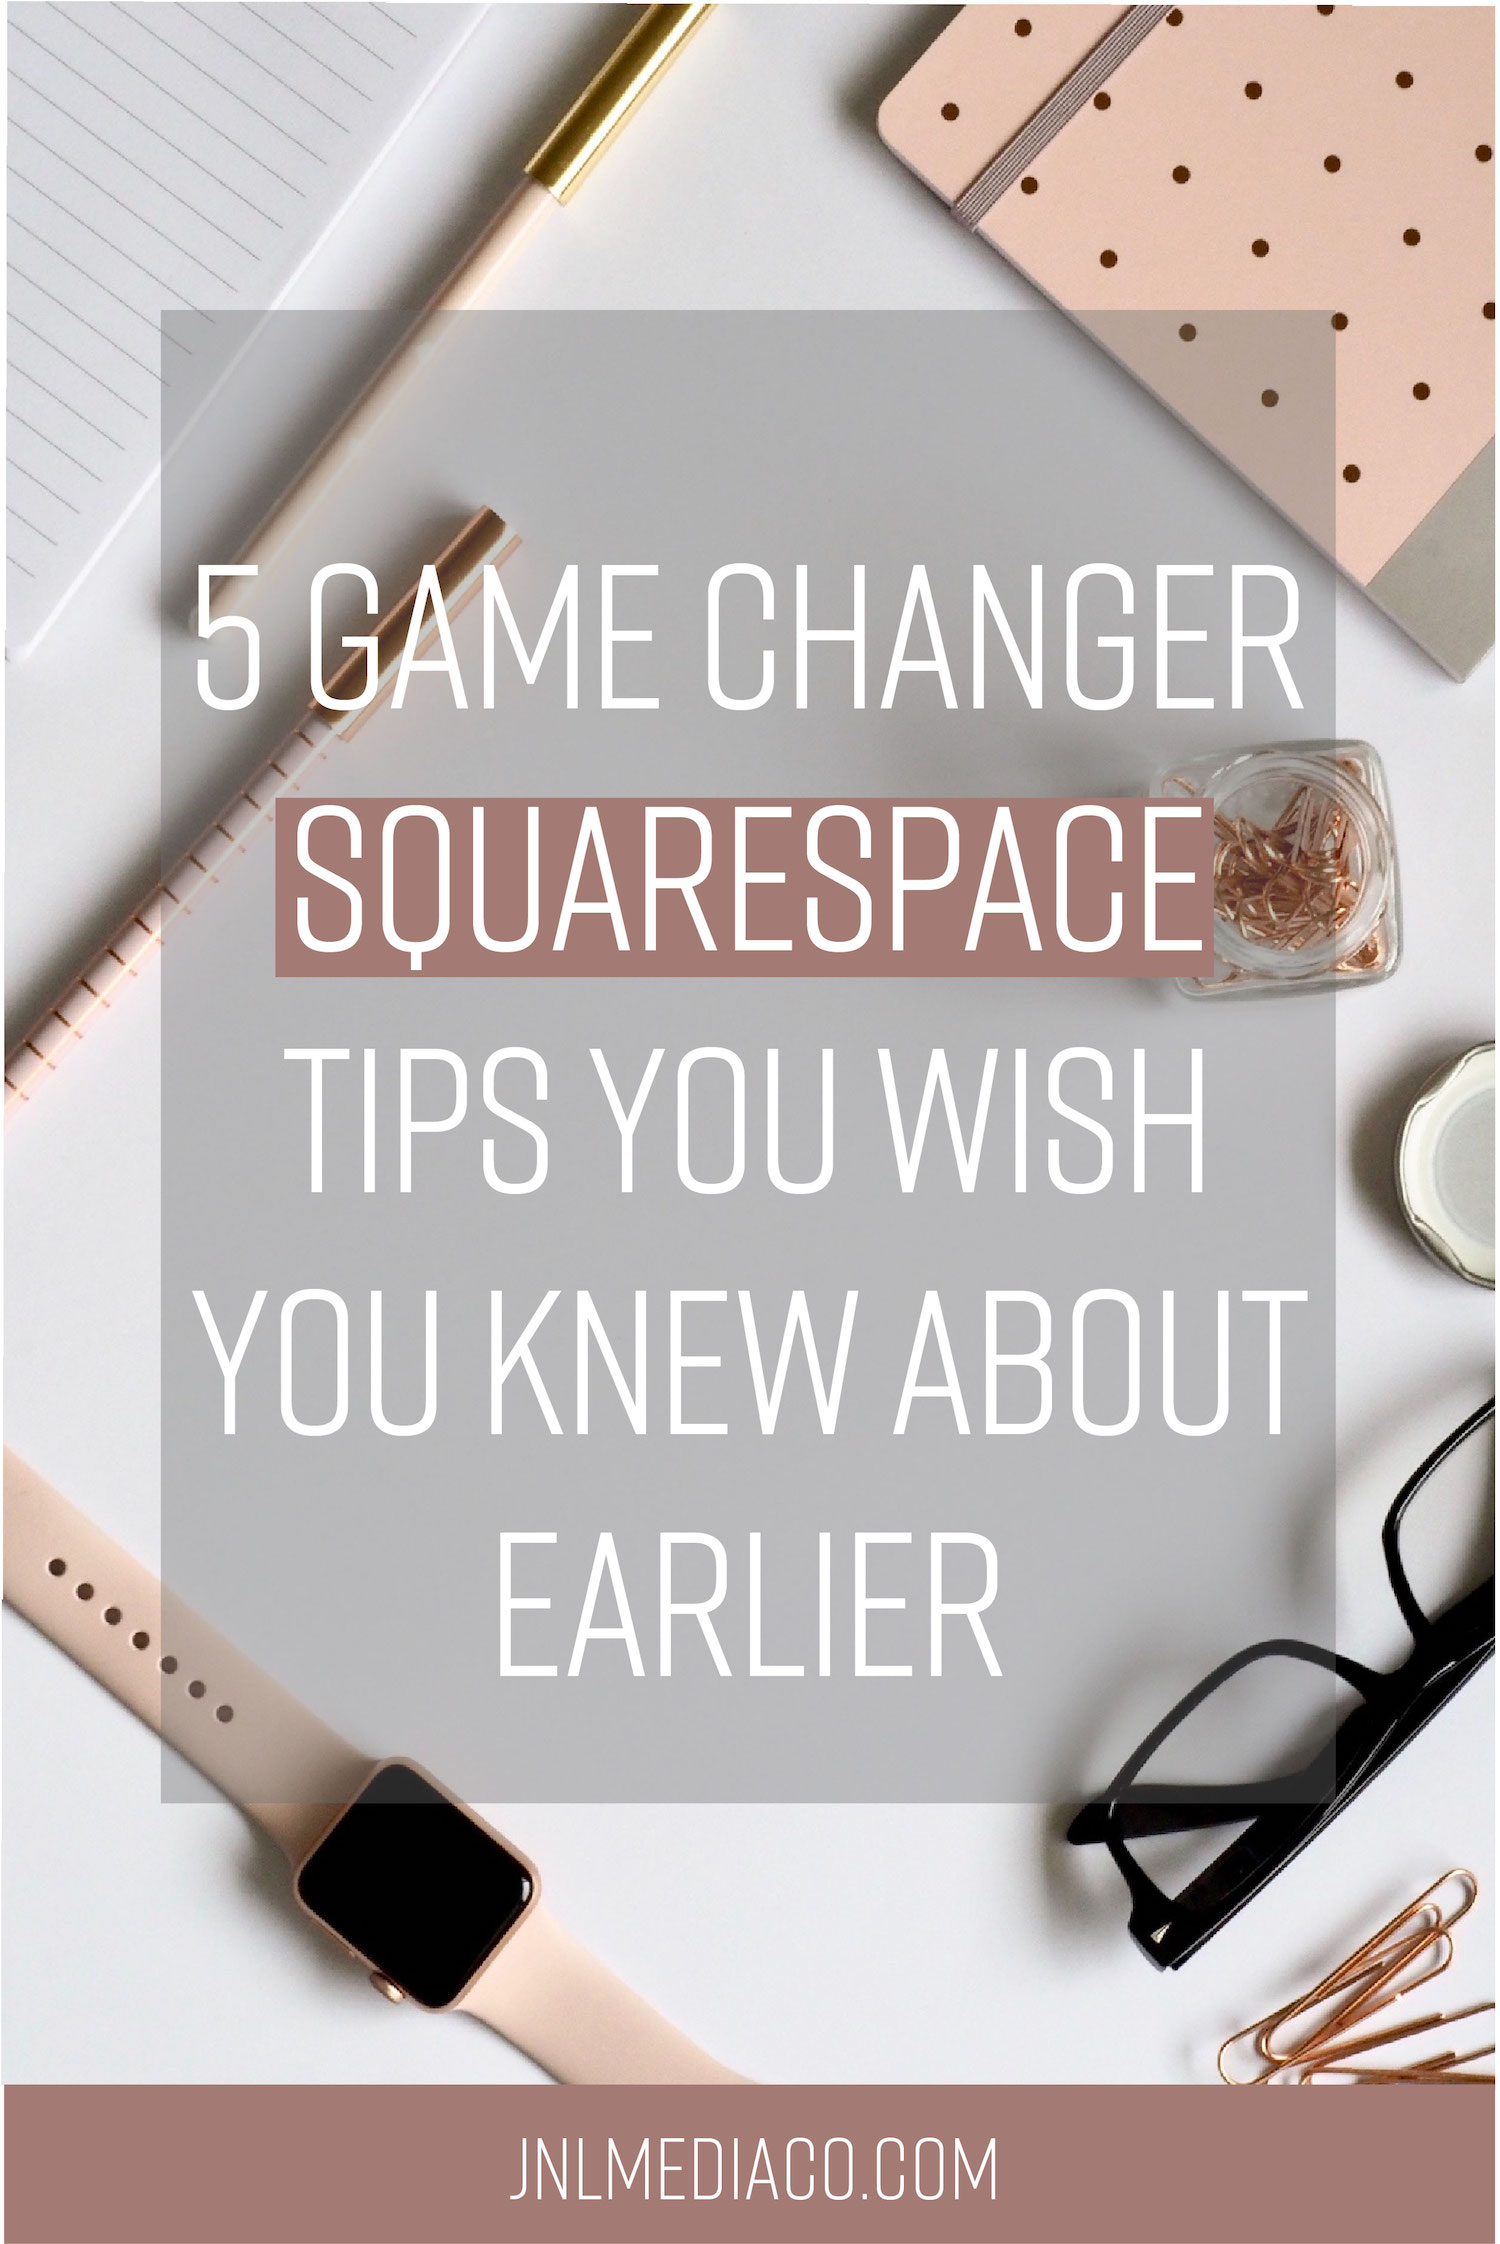 There is so much you can do with Squarespace but some things aren't as obvious as others! I put together a list of five Squarespace tips to help you customize your site and save you time. Don't forget to re-pin if you find it helpful!